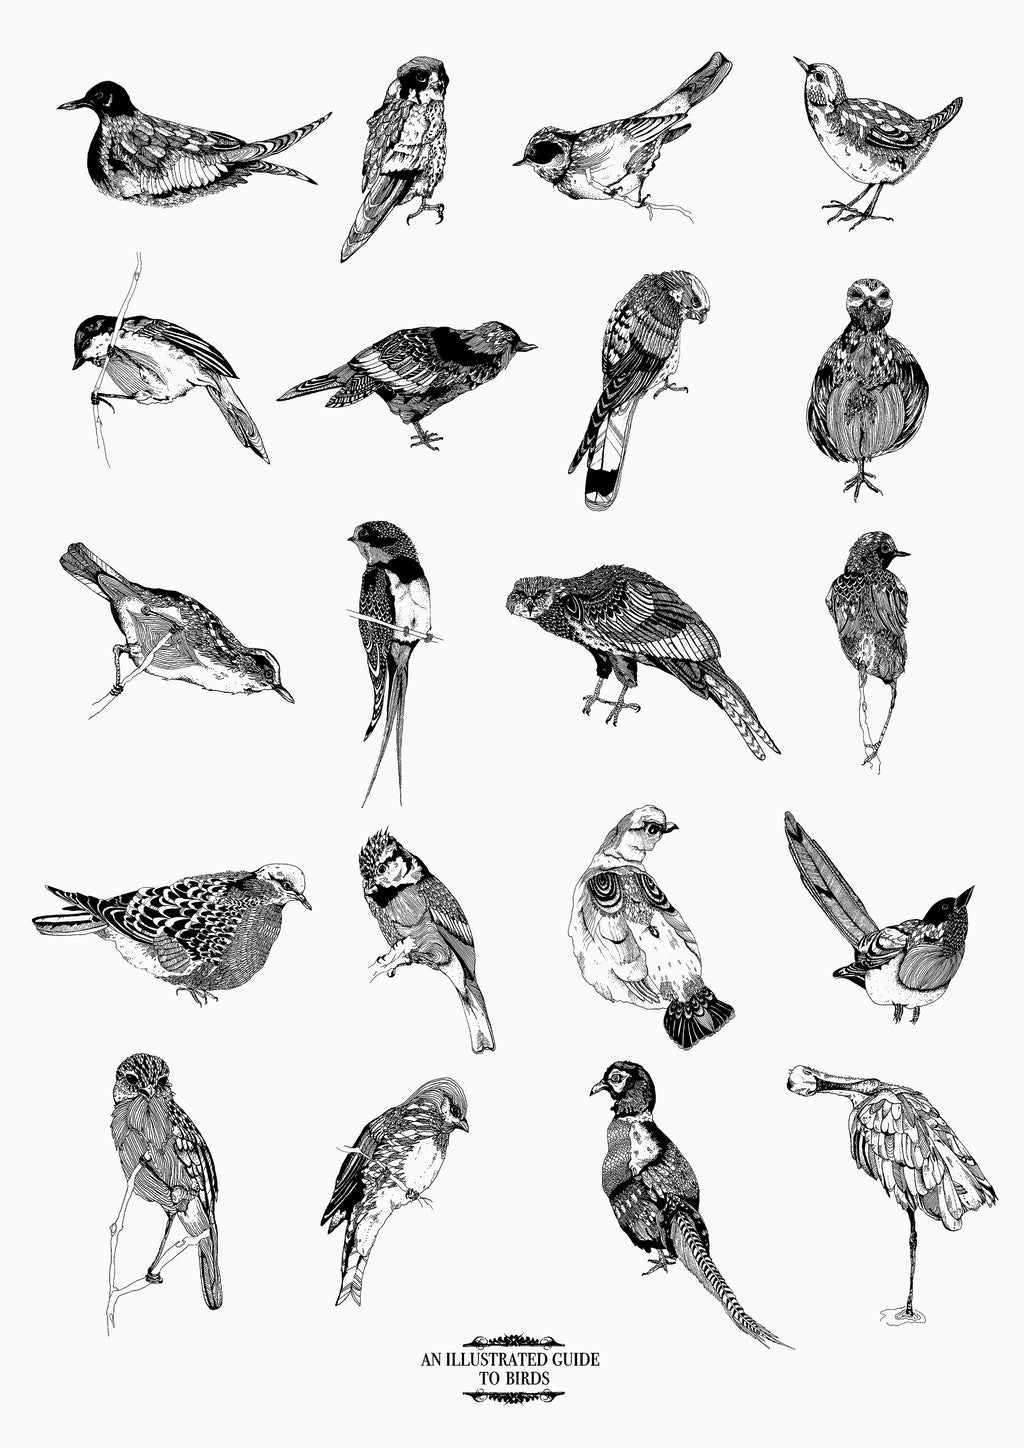 Illustrated Guide to Birds